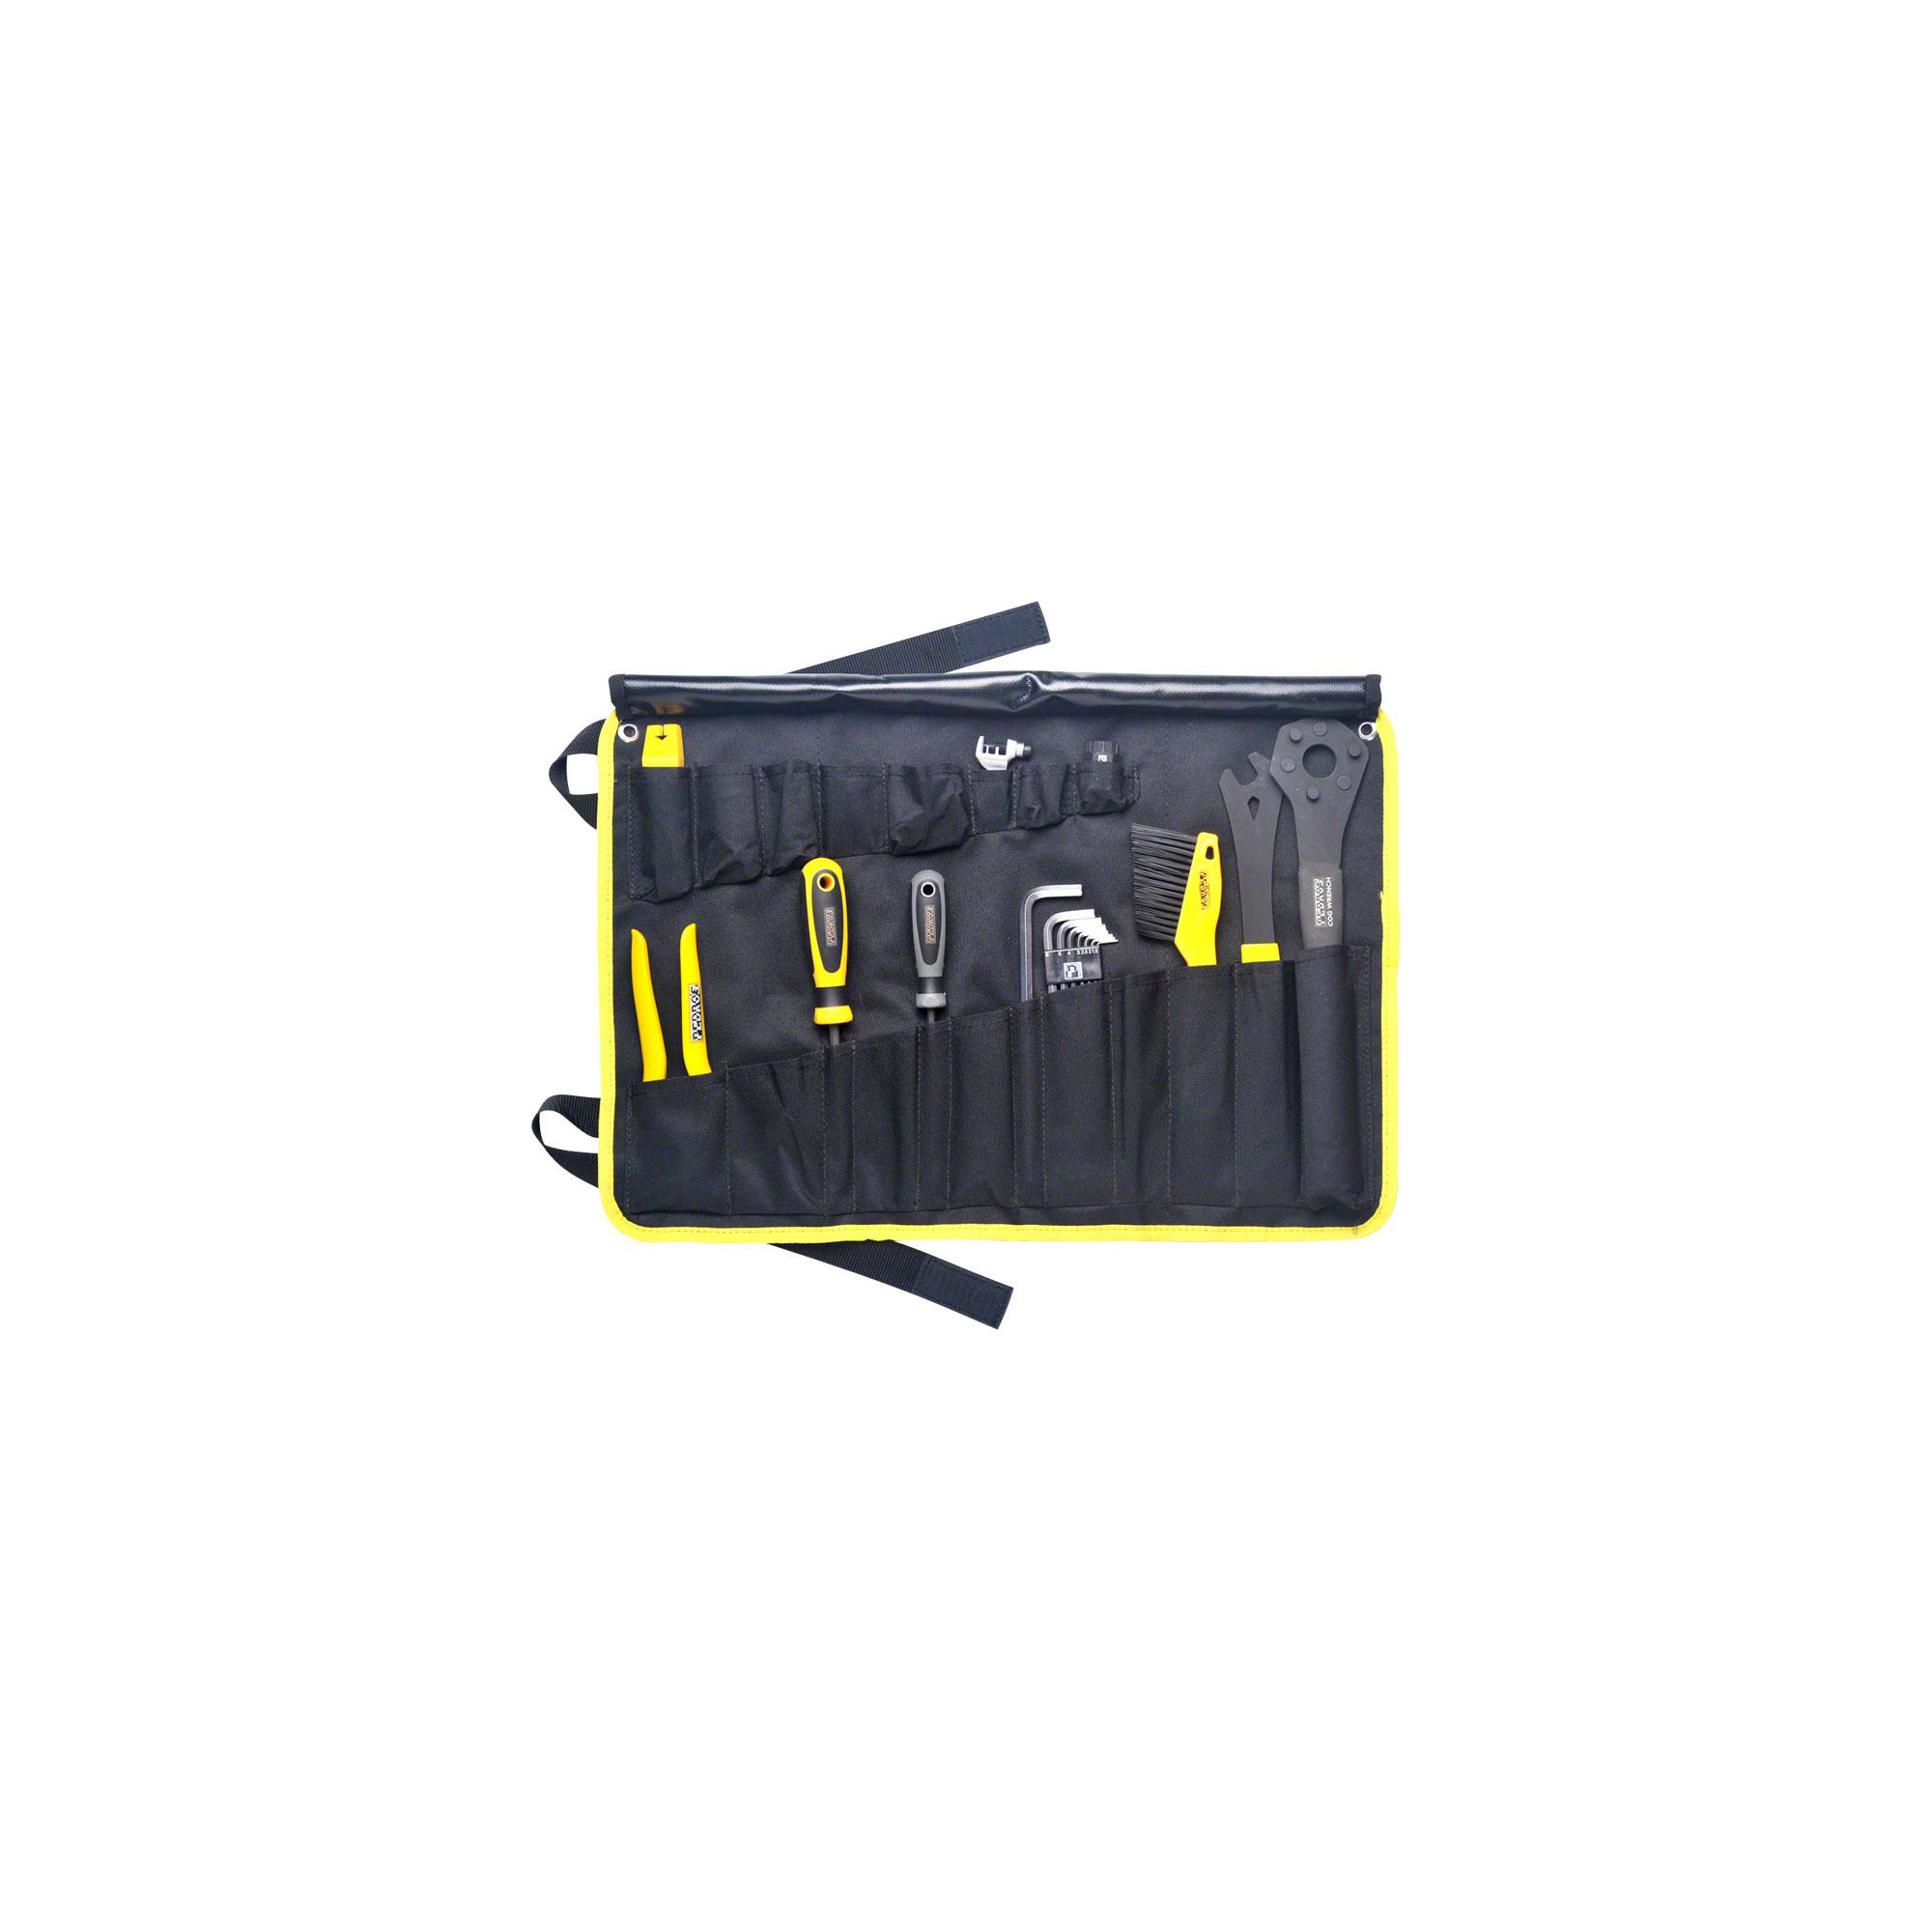 PEDRO/'S STARTER TOOL KIT INCLUDING 19 TOOLS AND TOOL WRAP BICYCLE TOOL